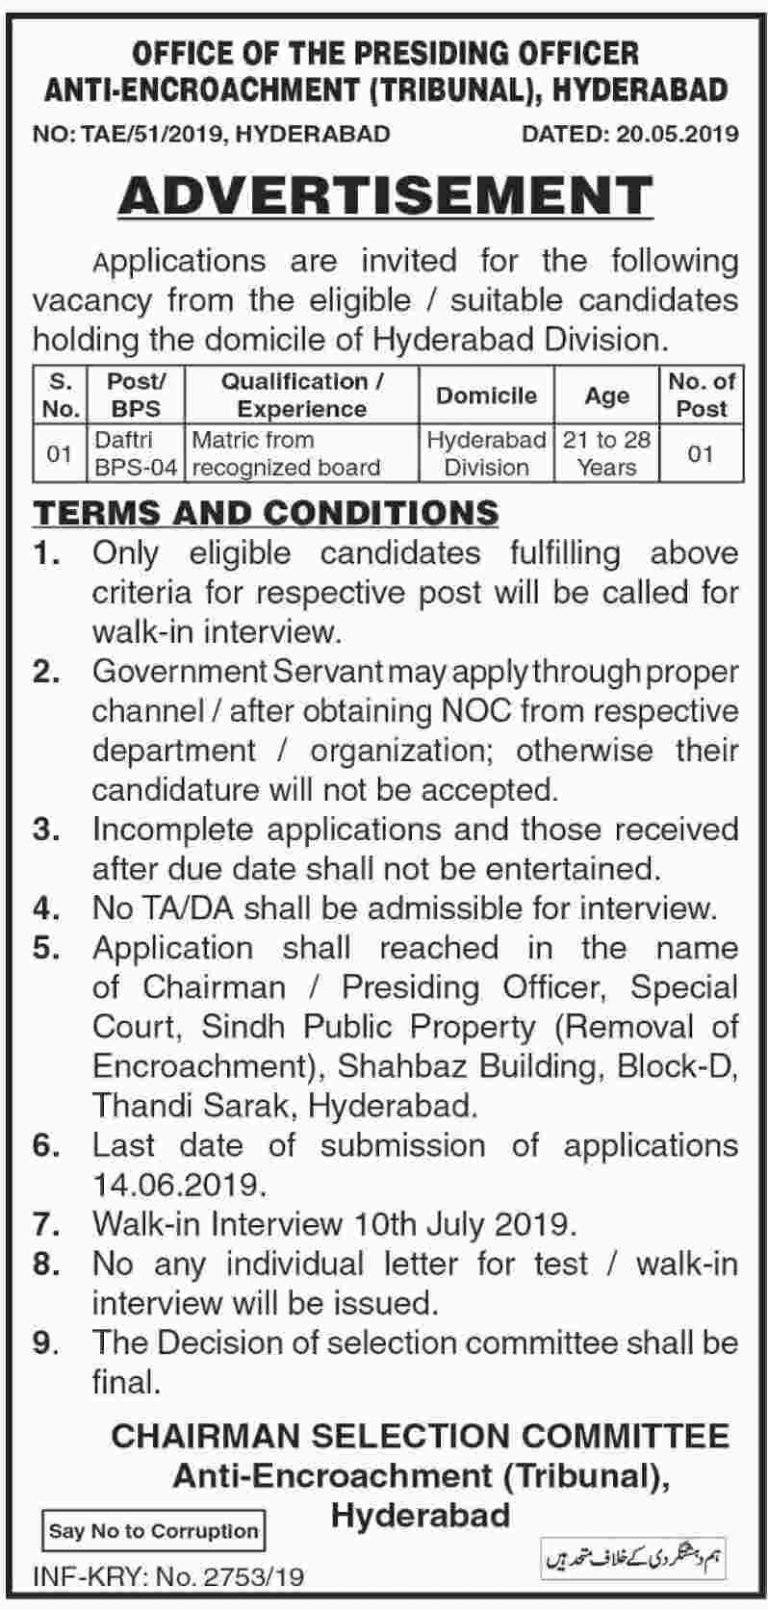 Anti-Encroachment Tribunal Hyderabad Jobs 2019 for Daftri / BPS 4